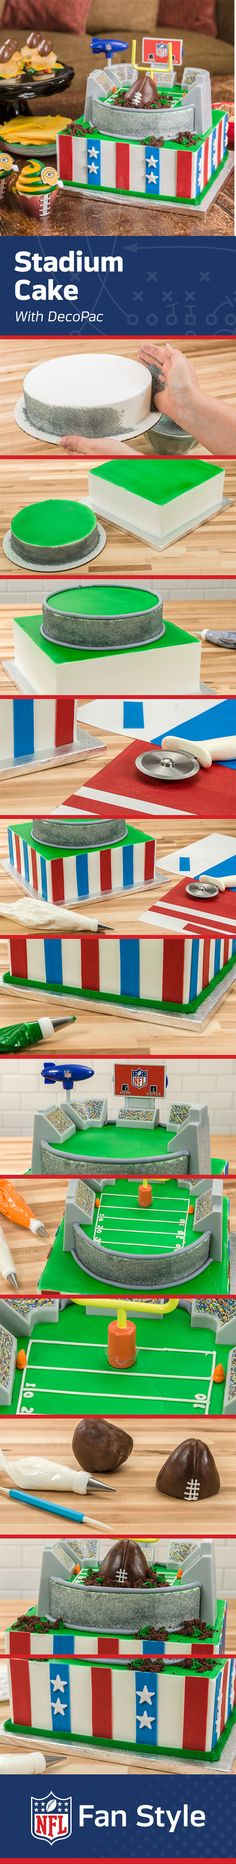 If you can't make it to the stadium, this Stadium Cake recipe is perhaps the next best thing. Decorate this dessert with piping, fondant, and accessories from DecoPac and you're ready to one-up all the other fans at your next Homegate.